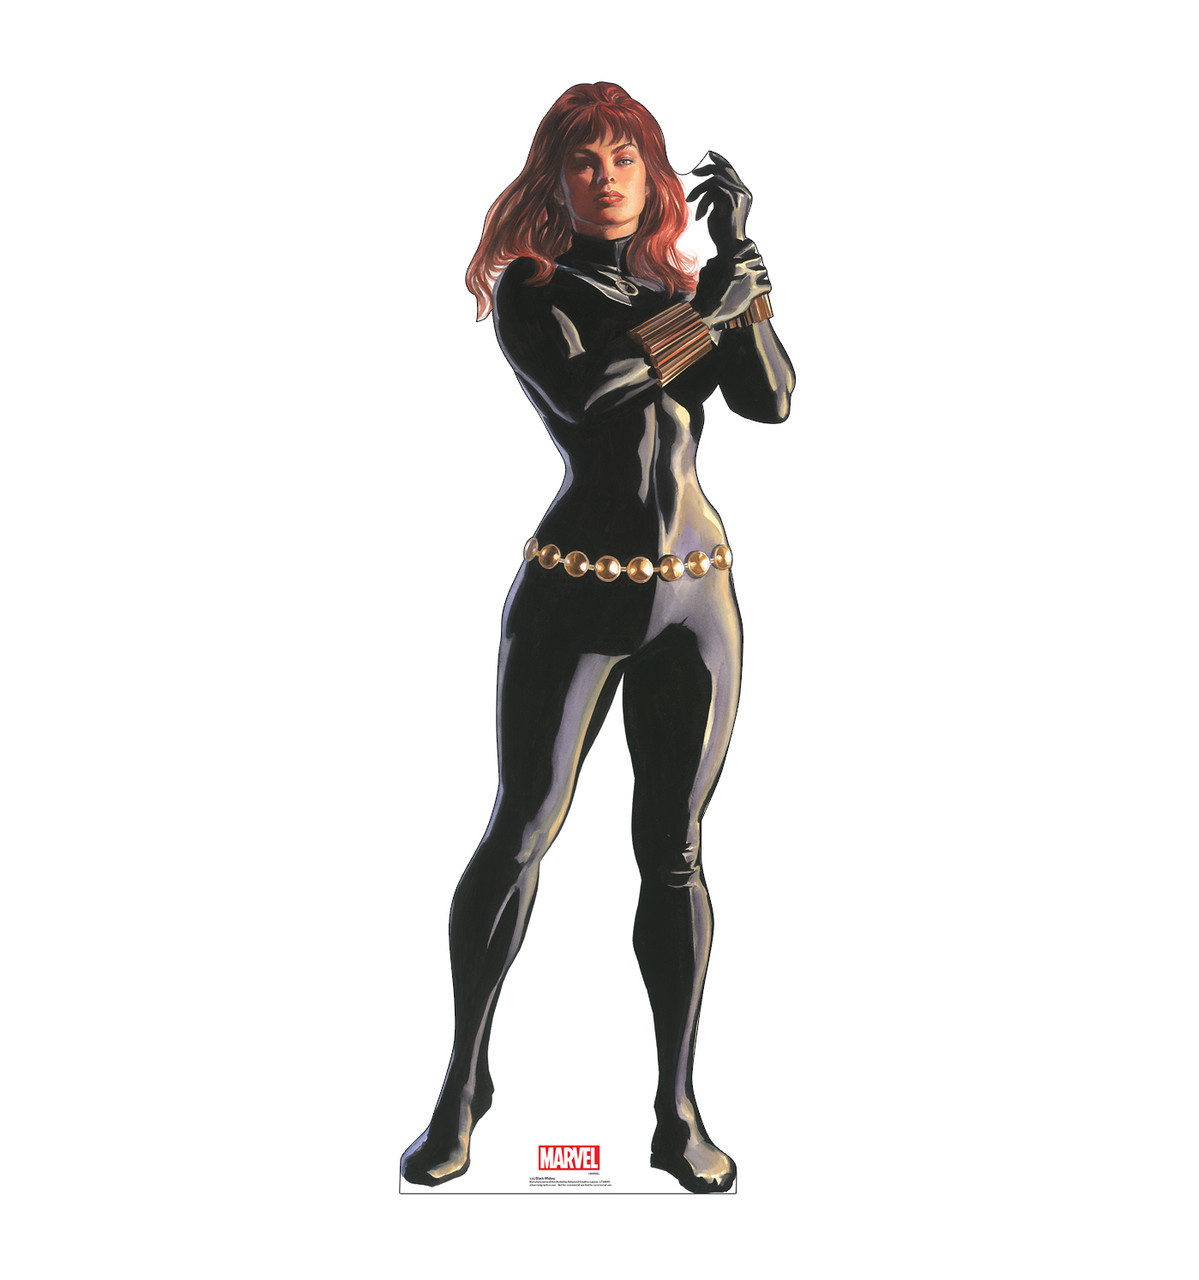 Life-size cardboard standee of Black Widow from Marvels Timeless Collection.